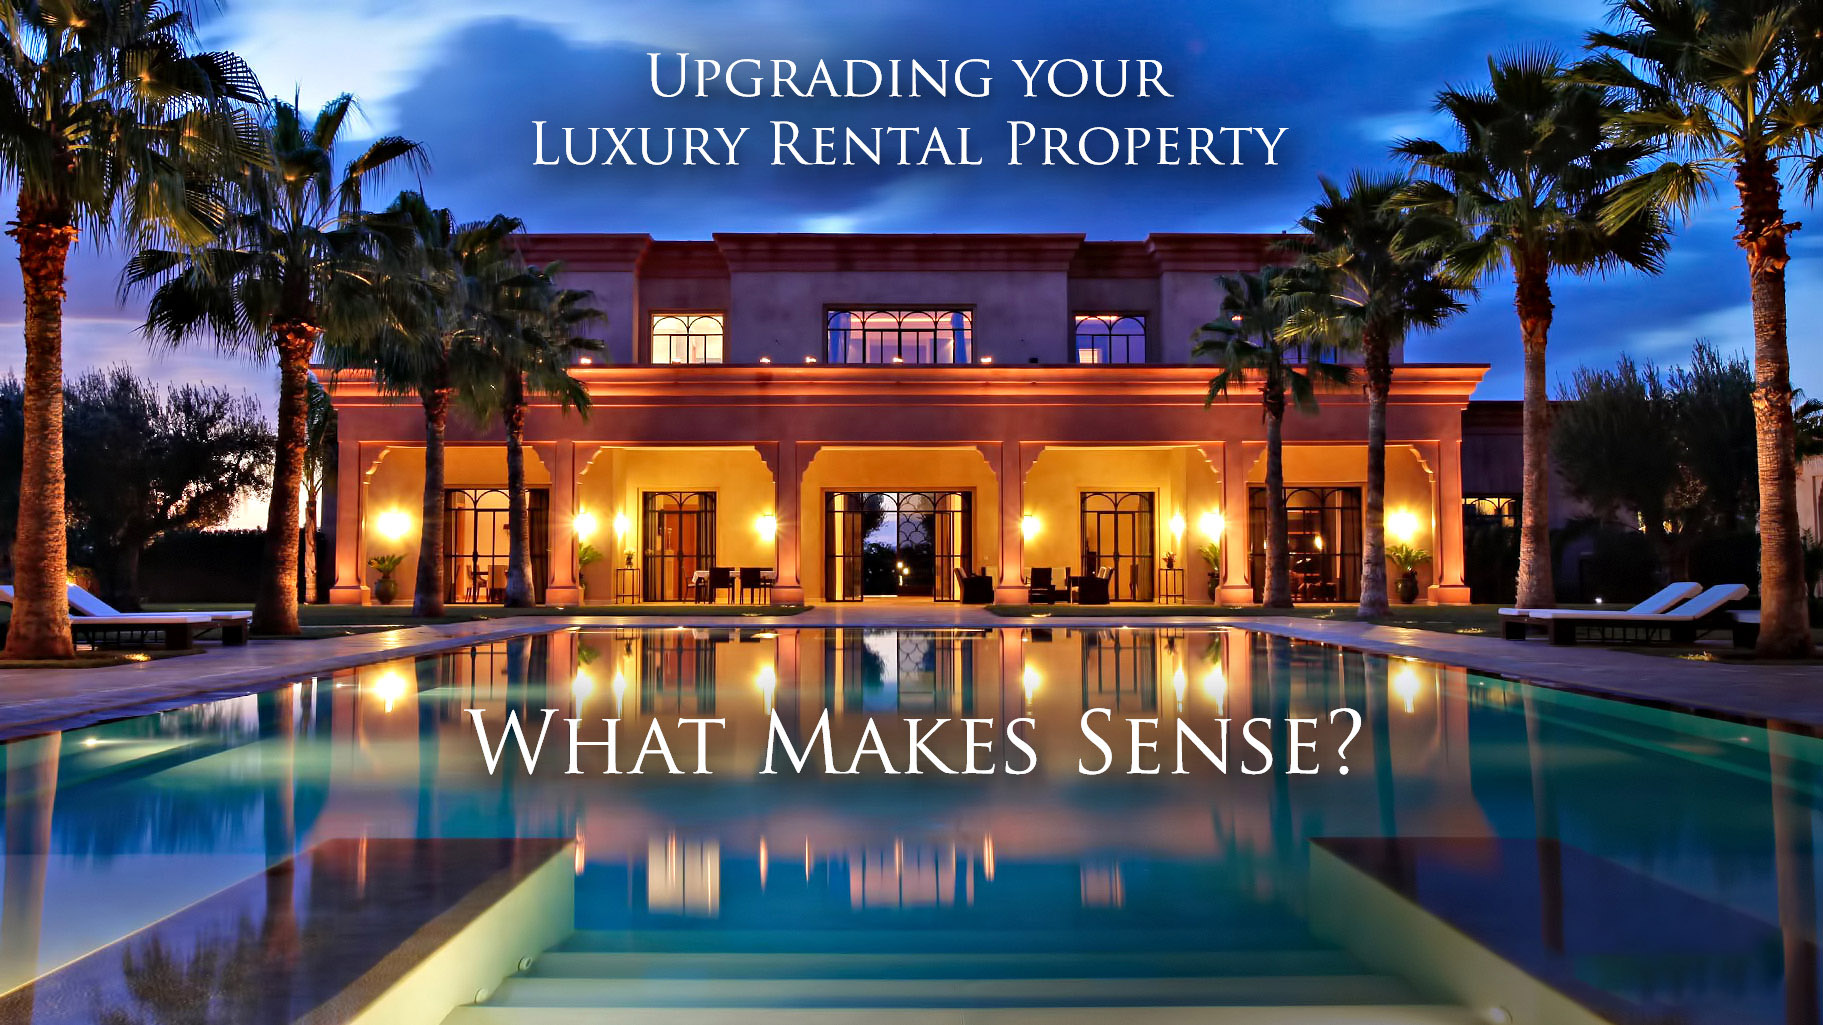 Upgrading your Luxury Rental Property - What Makes Sense?